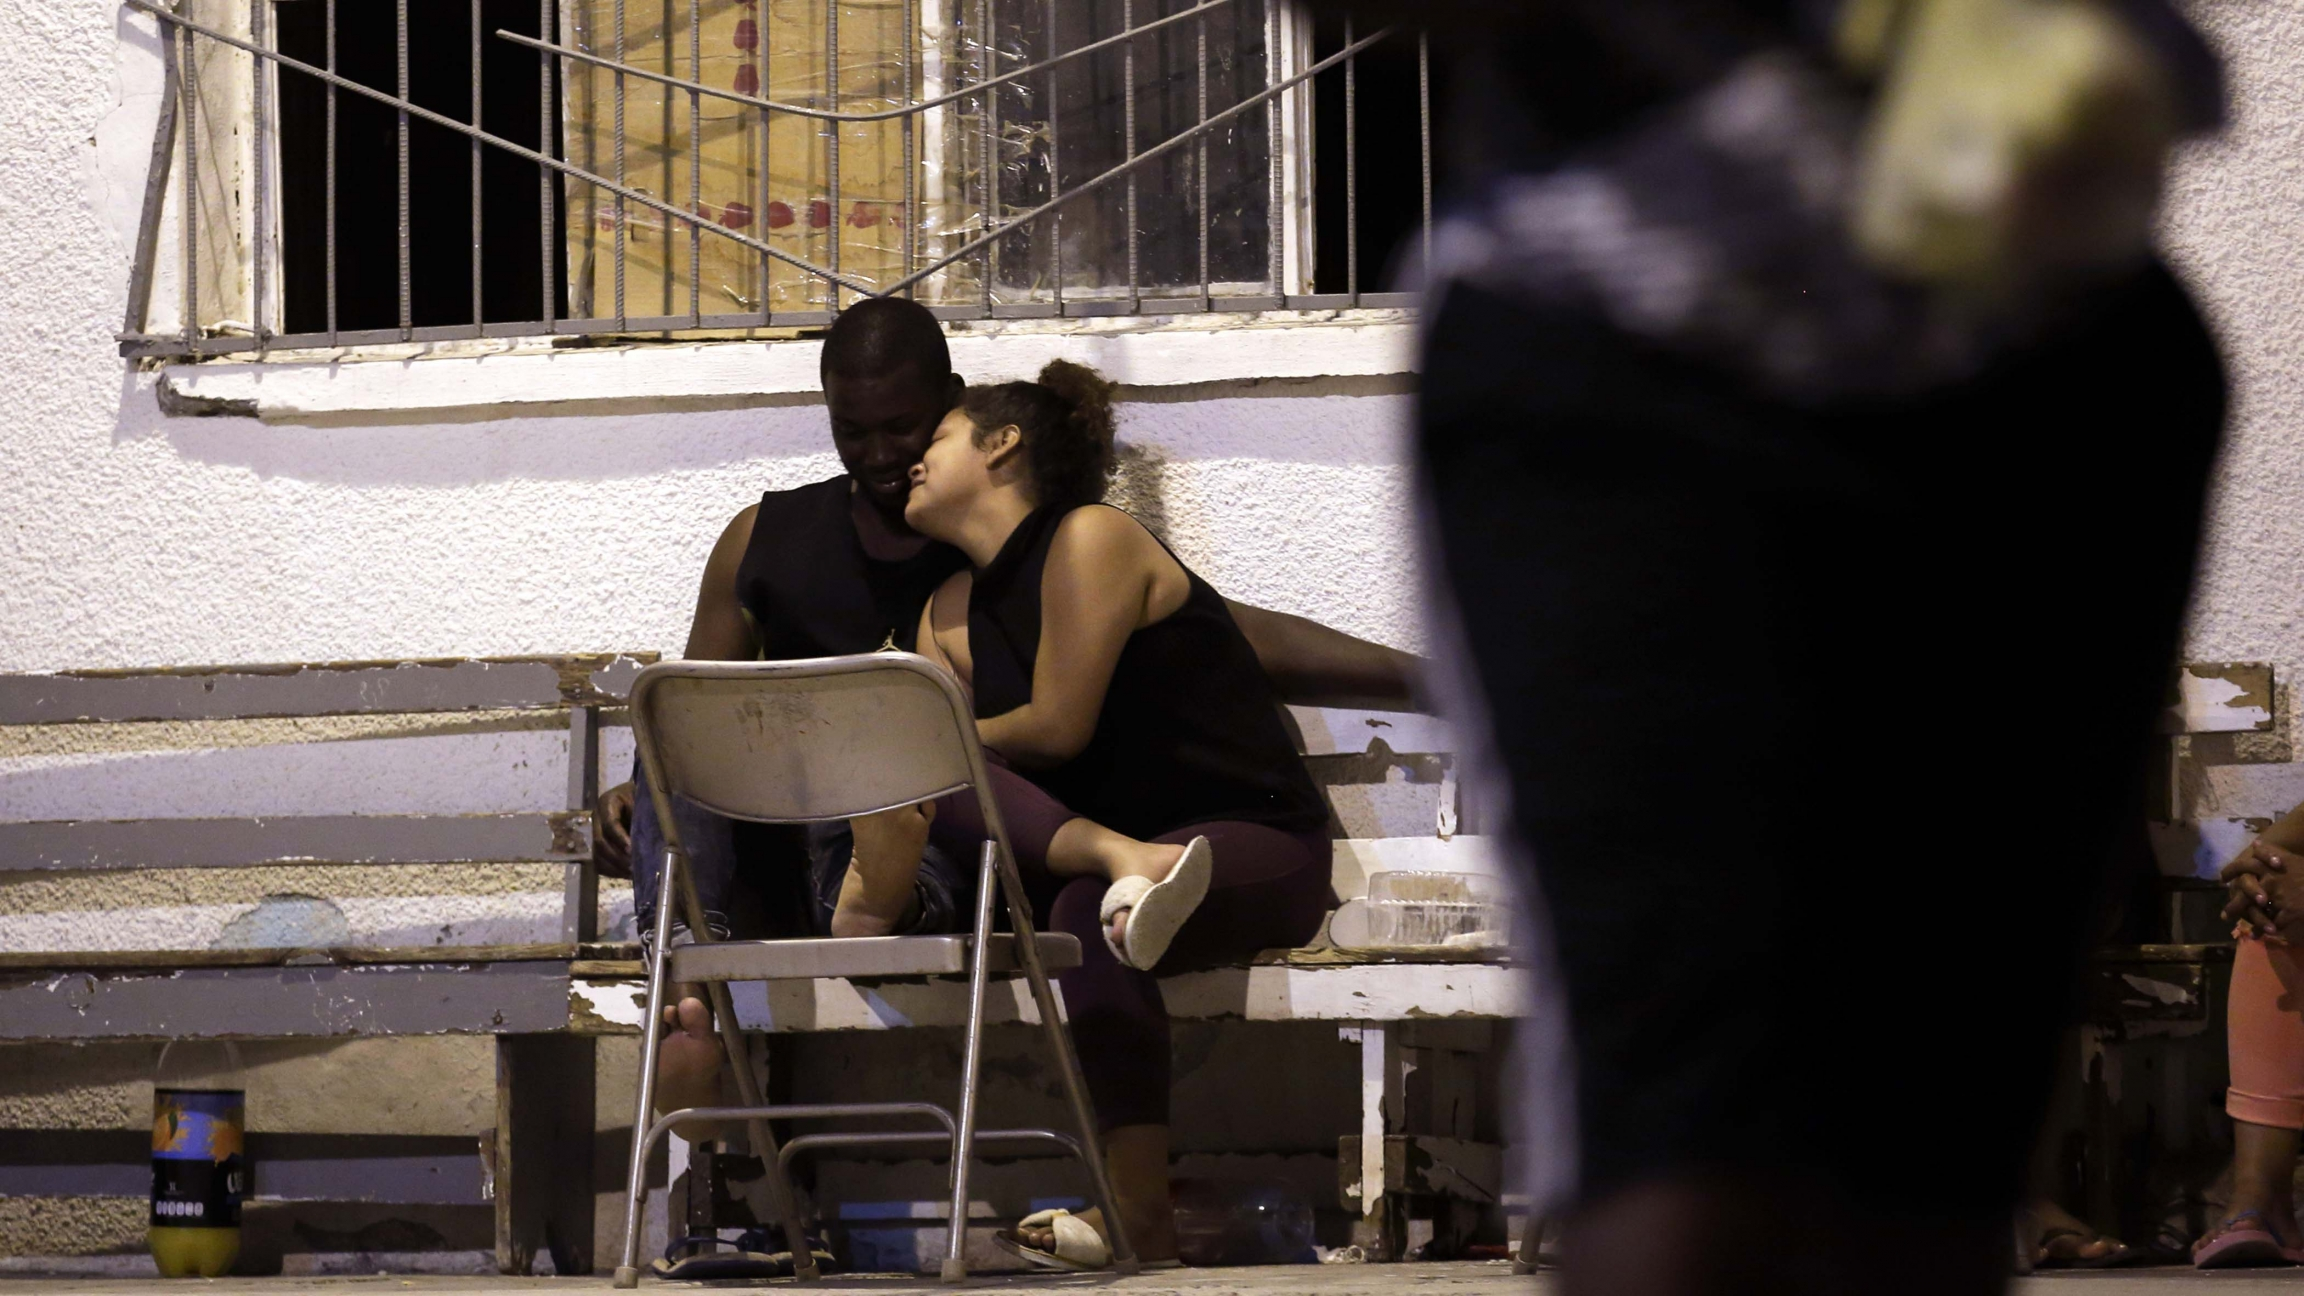 In this photo fromJuly 28, 2019,a woman from Nicaragua embraces a man from Africa under the patio floodlights at El Buen Pastor shelter for migrants in Ciudad Juárez, Mexico.